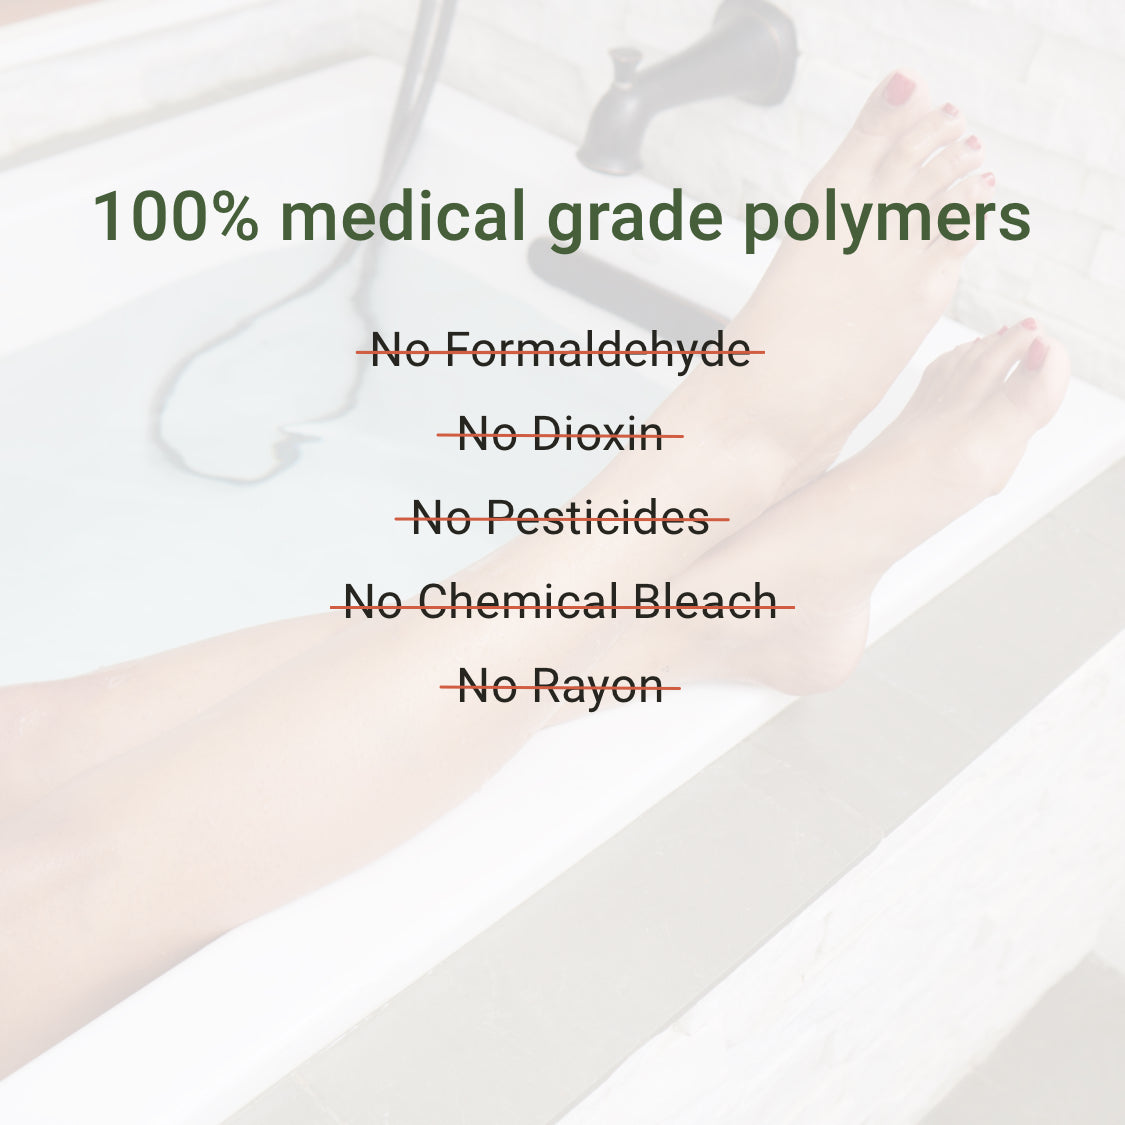 100% medical grade polymers, no formaldehyde, no dioxin, no pesticides, no chemical bleach, no rayon